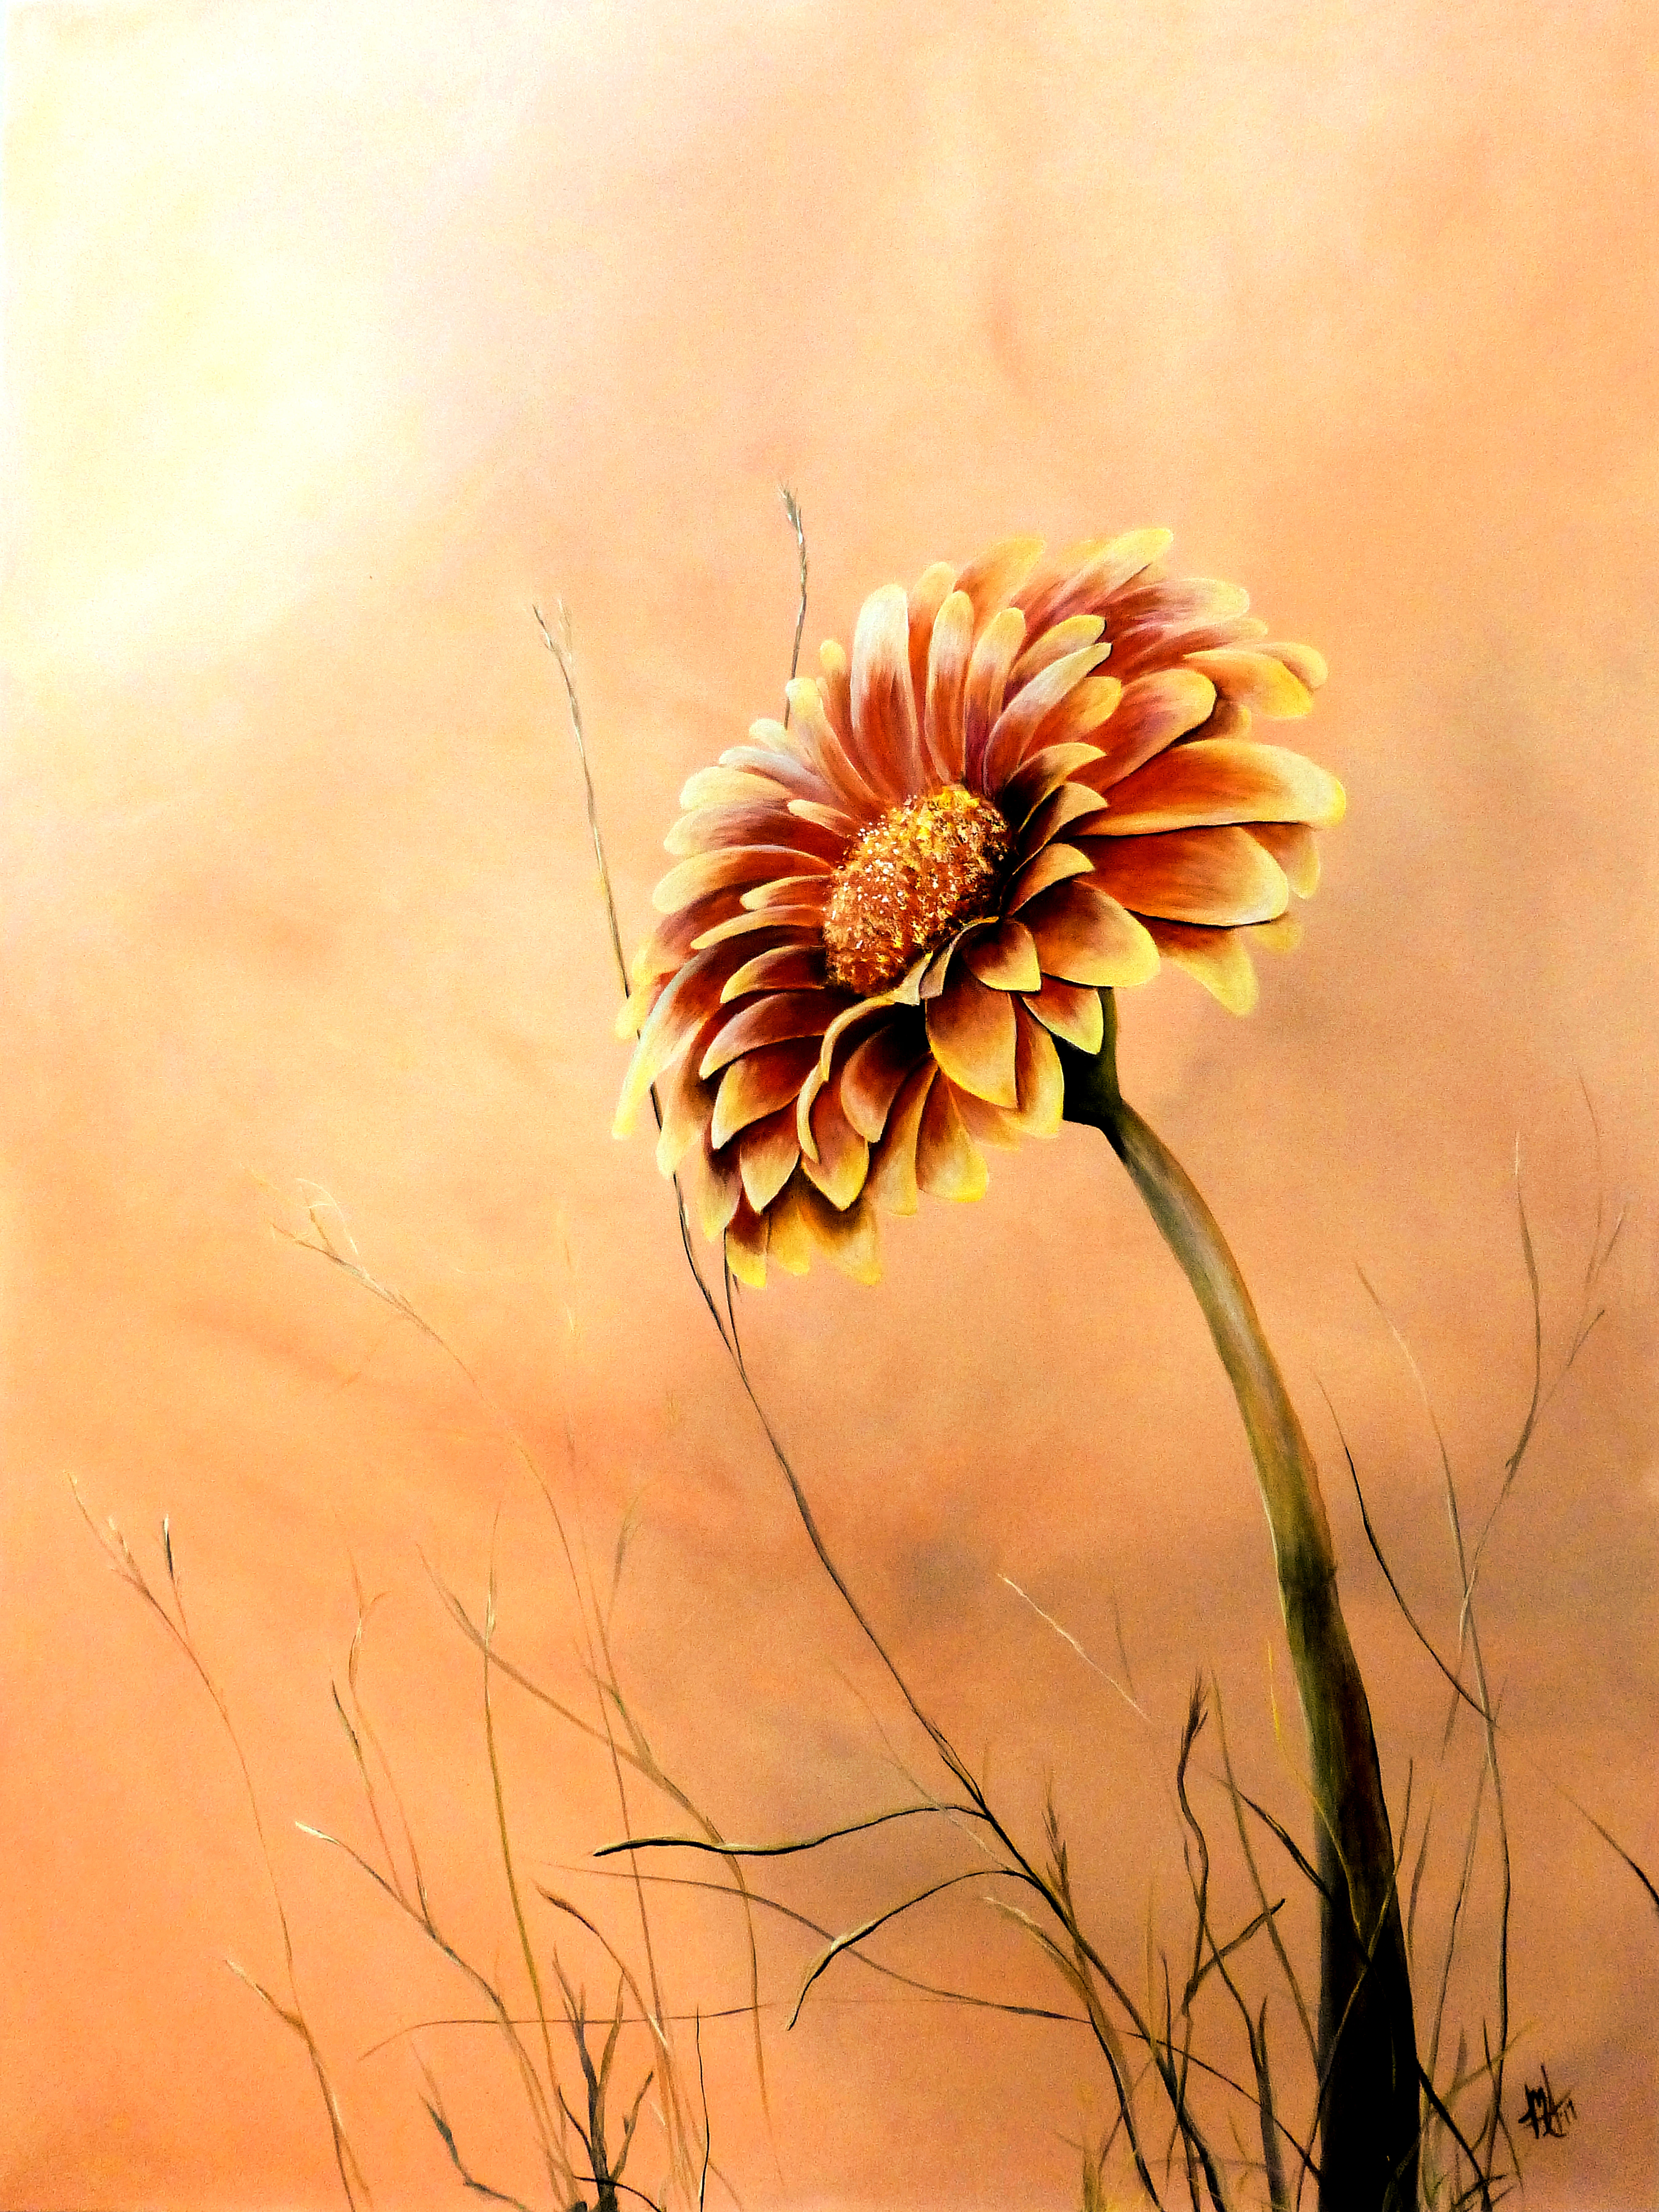 Michelle iglesias artwork red and yellow gerbera daisy original close x izmirmasajfo